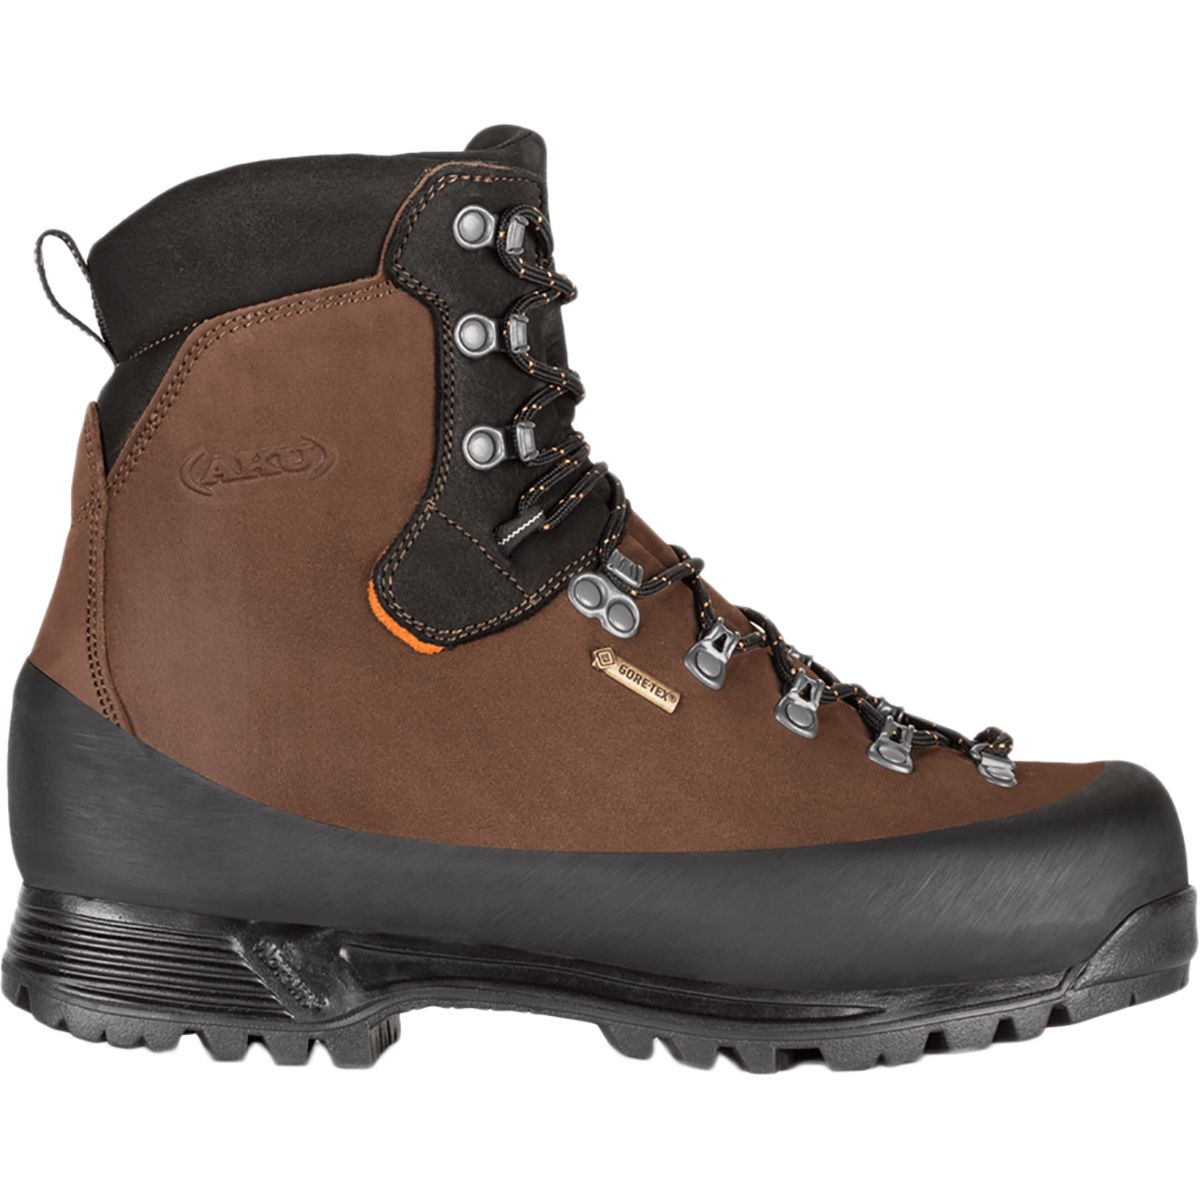 photo: AKU Utah Top GTX backpacking boot